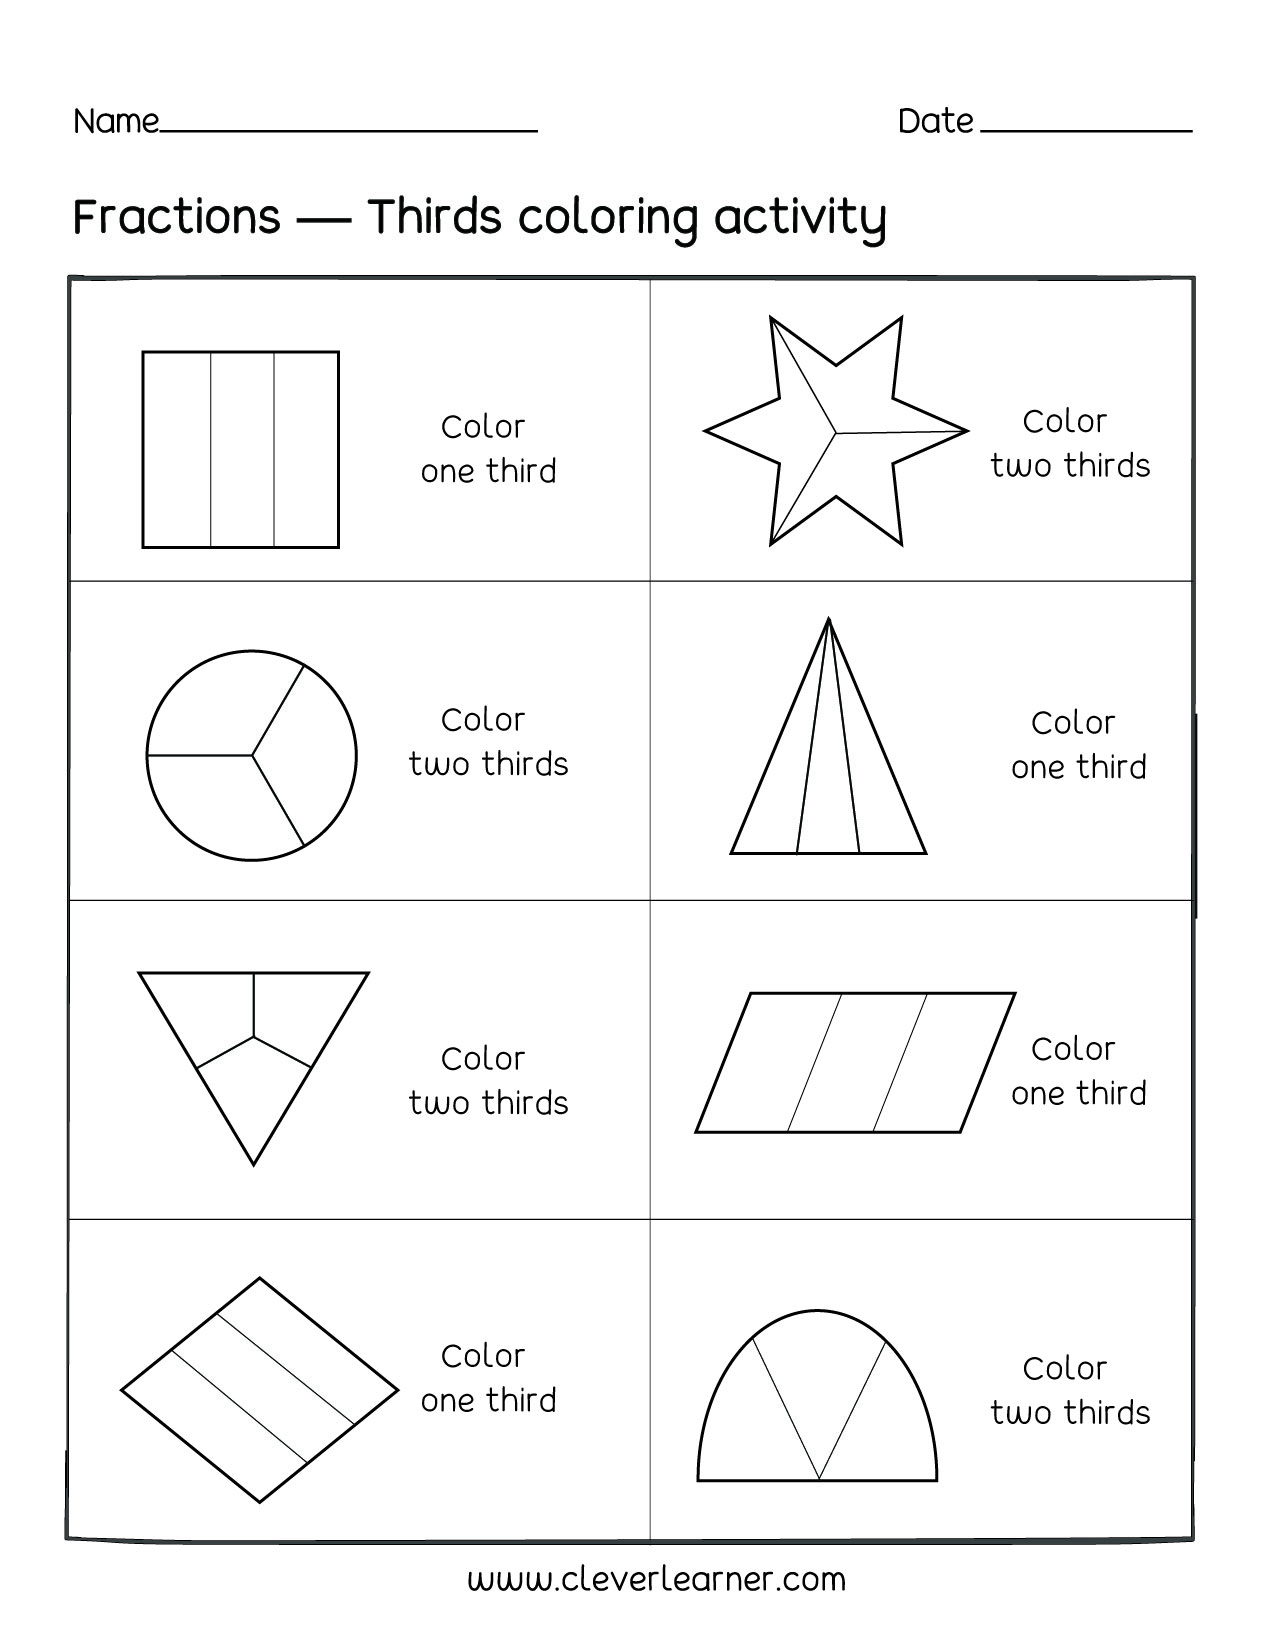 Fun activity on fractions, Thirds worksheets for children